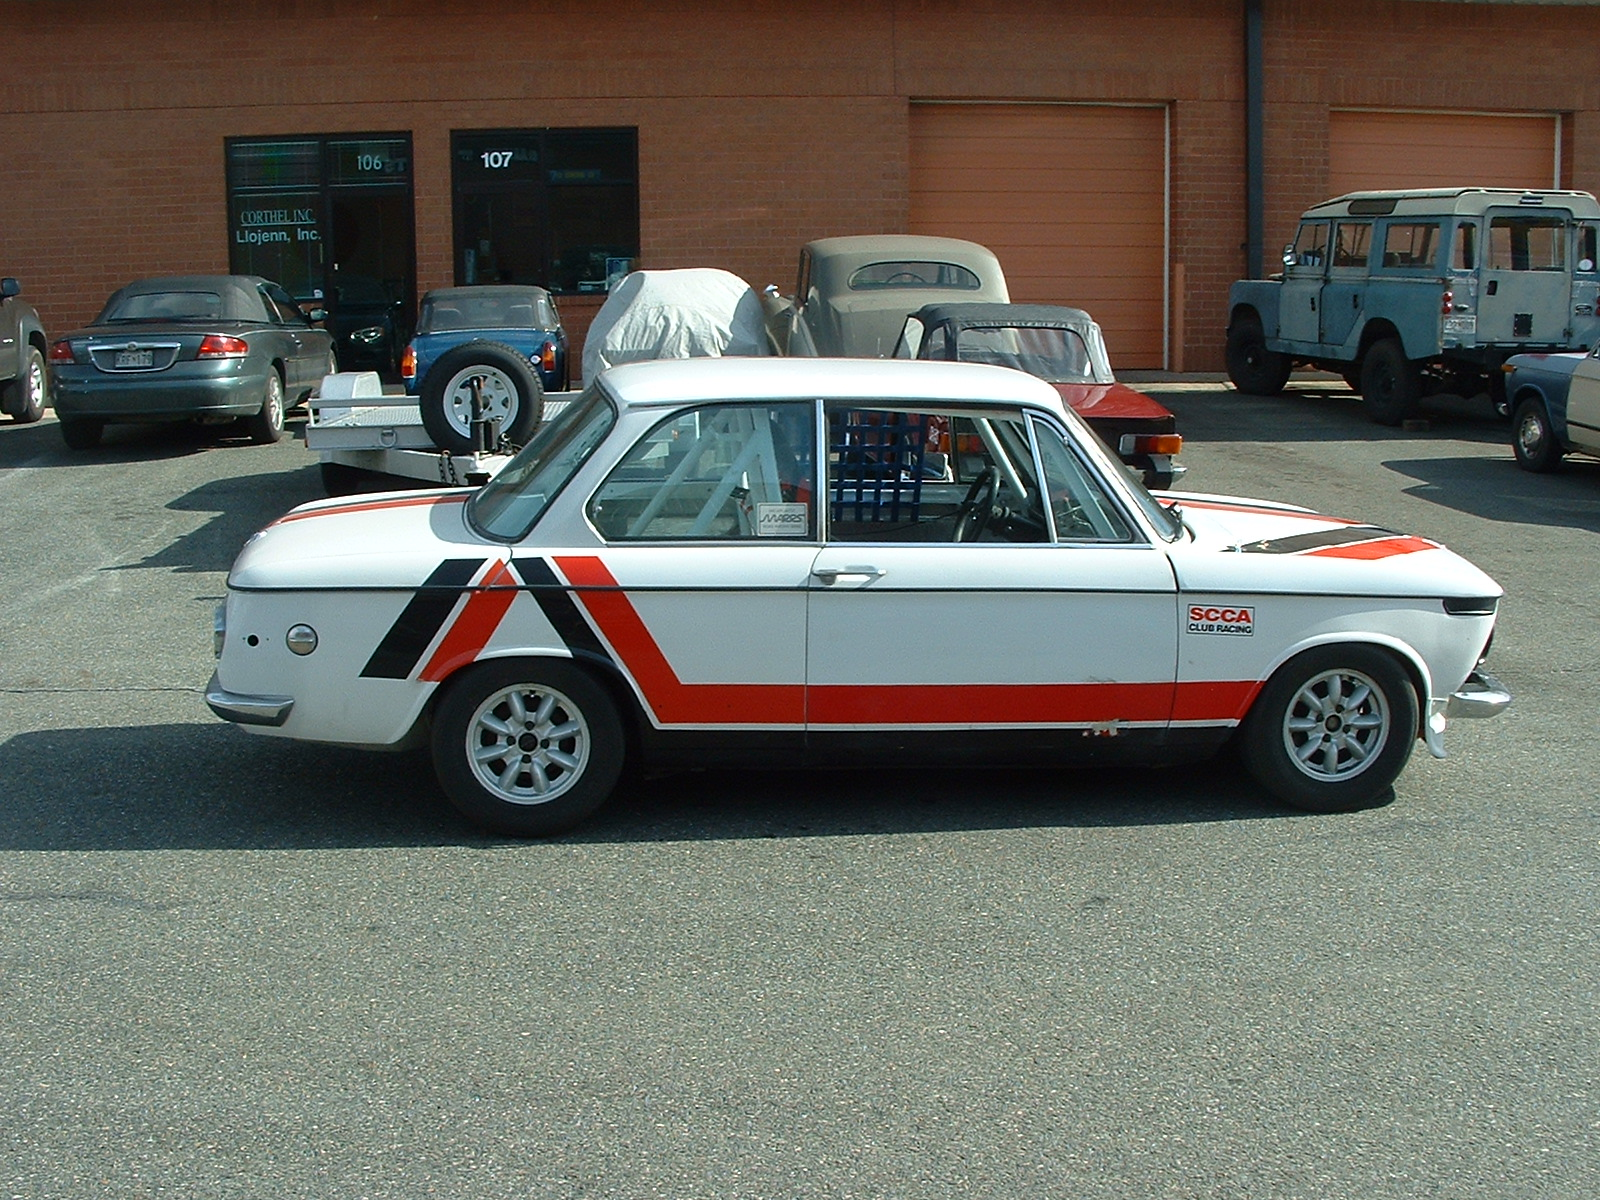 1971 BMW 2002 Race Car For Sale! – SOLD | Raspis British Imports